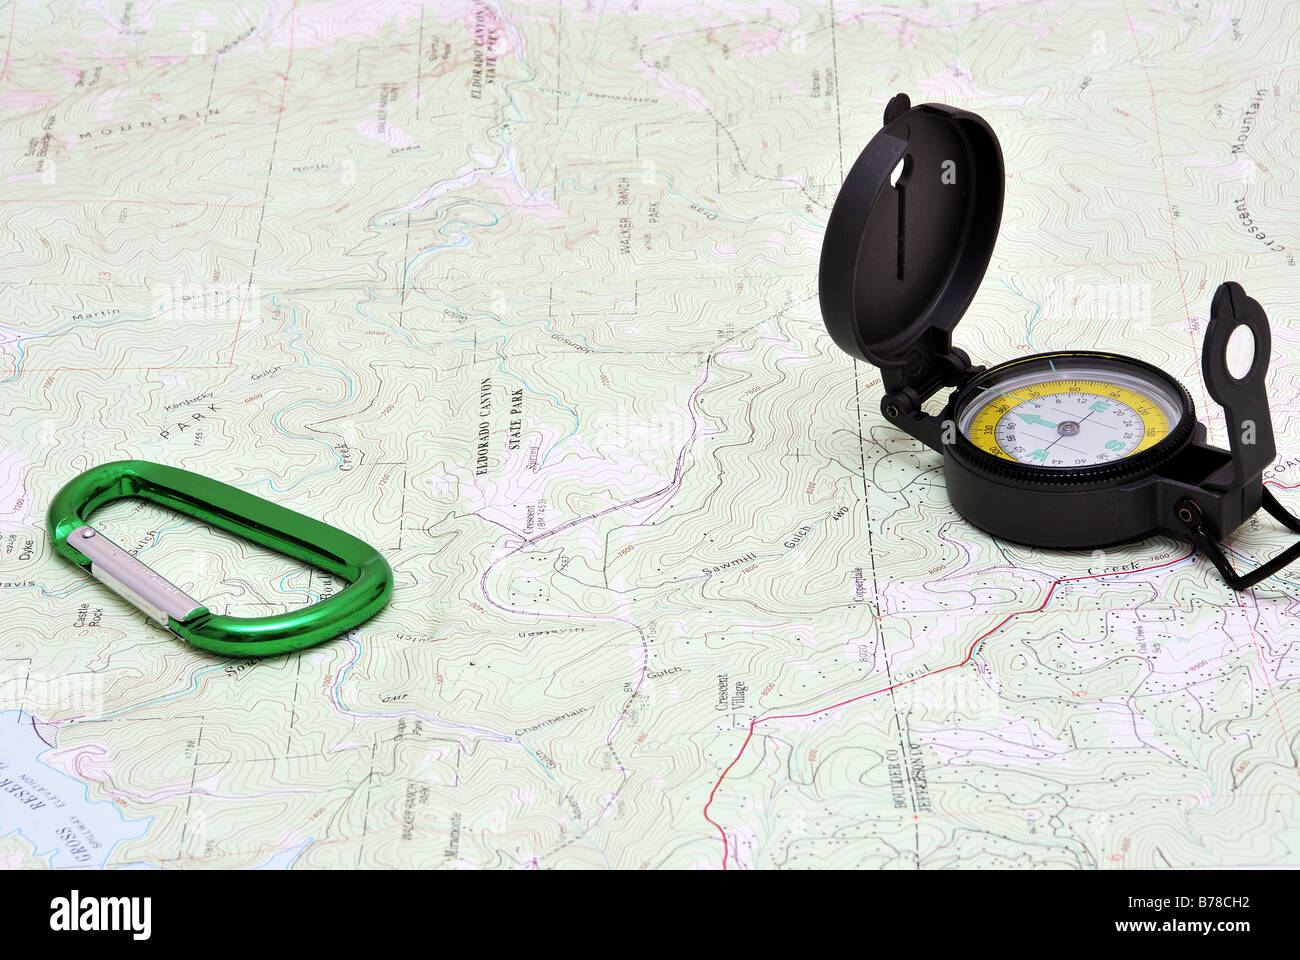 Map and compass - Stock Image